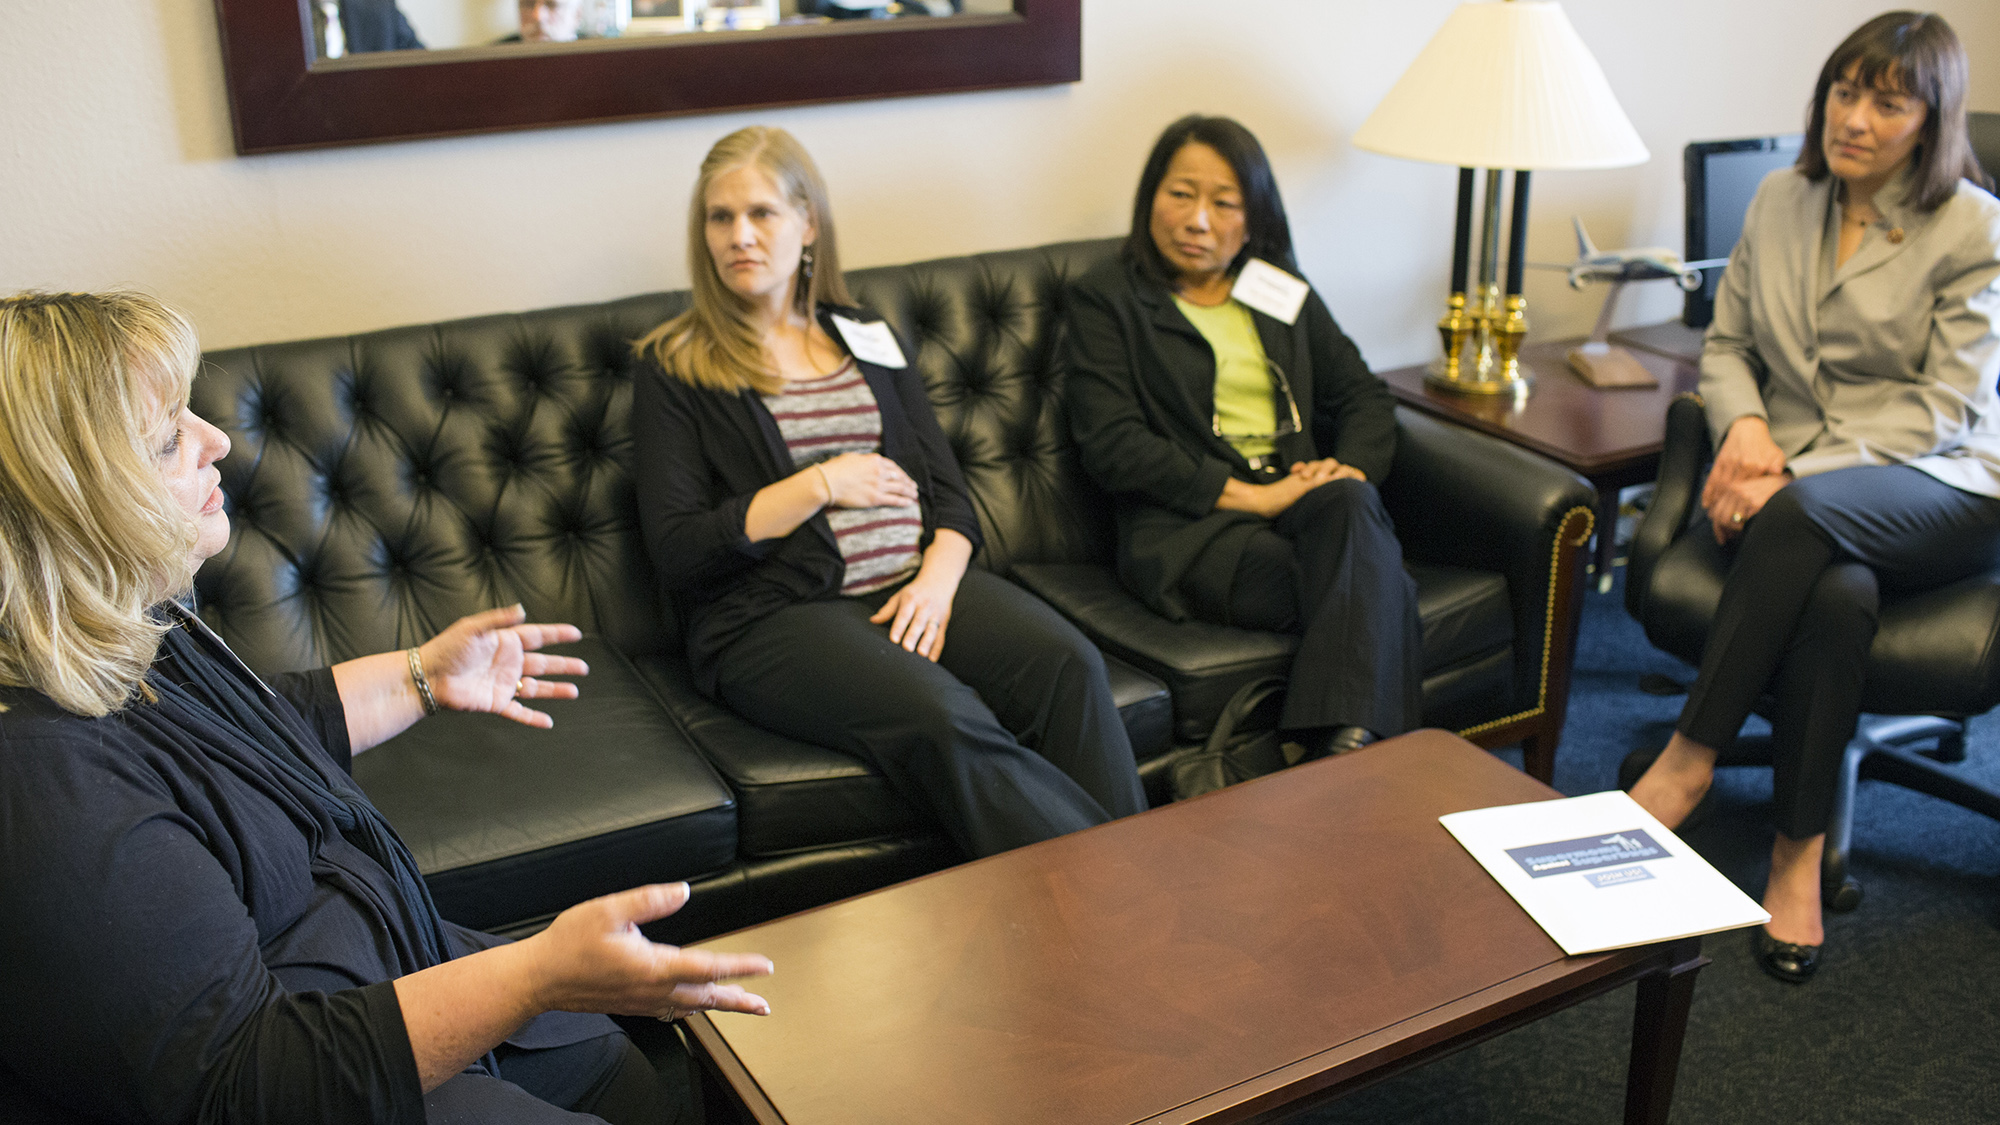 Cheryl Perron (left), whose son lost his leg and nearly his life due to an antibiotic-resistant infection, talks about the need for stronger regulation to end the overuse of antibiotics in agriculture with Representative Suzan DelBene (D-WA) (right). With Perron are Bethany Cook (center left), a registered dietitian, and Eiko Vojkovich, an organic farmer.